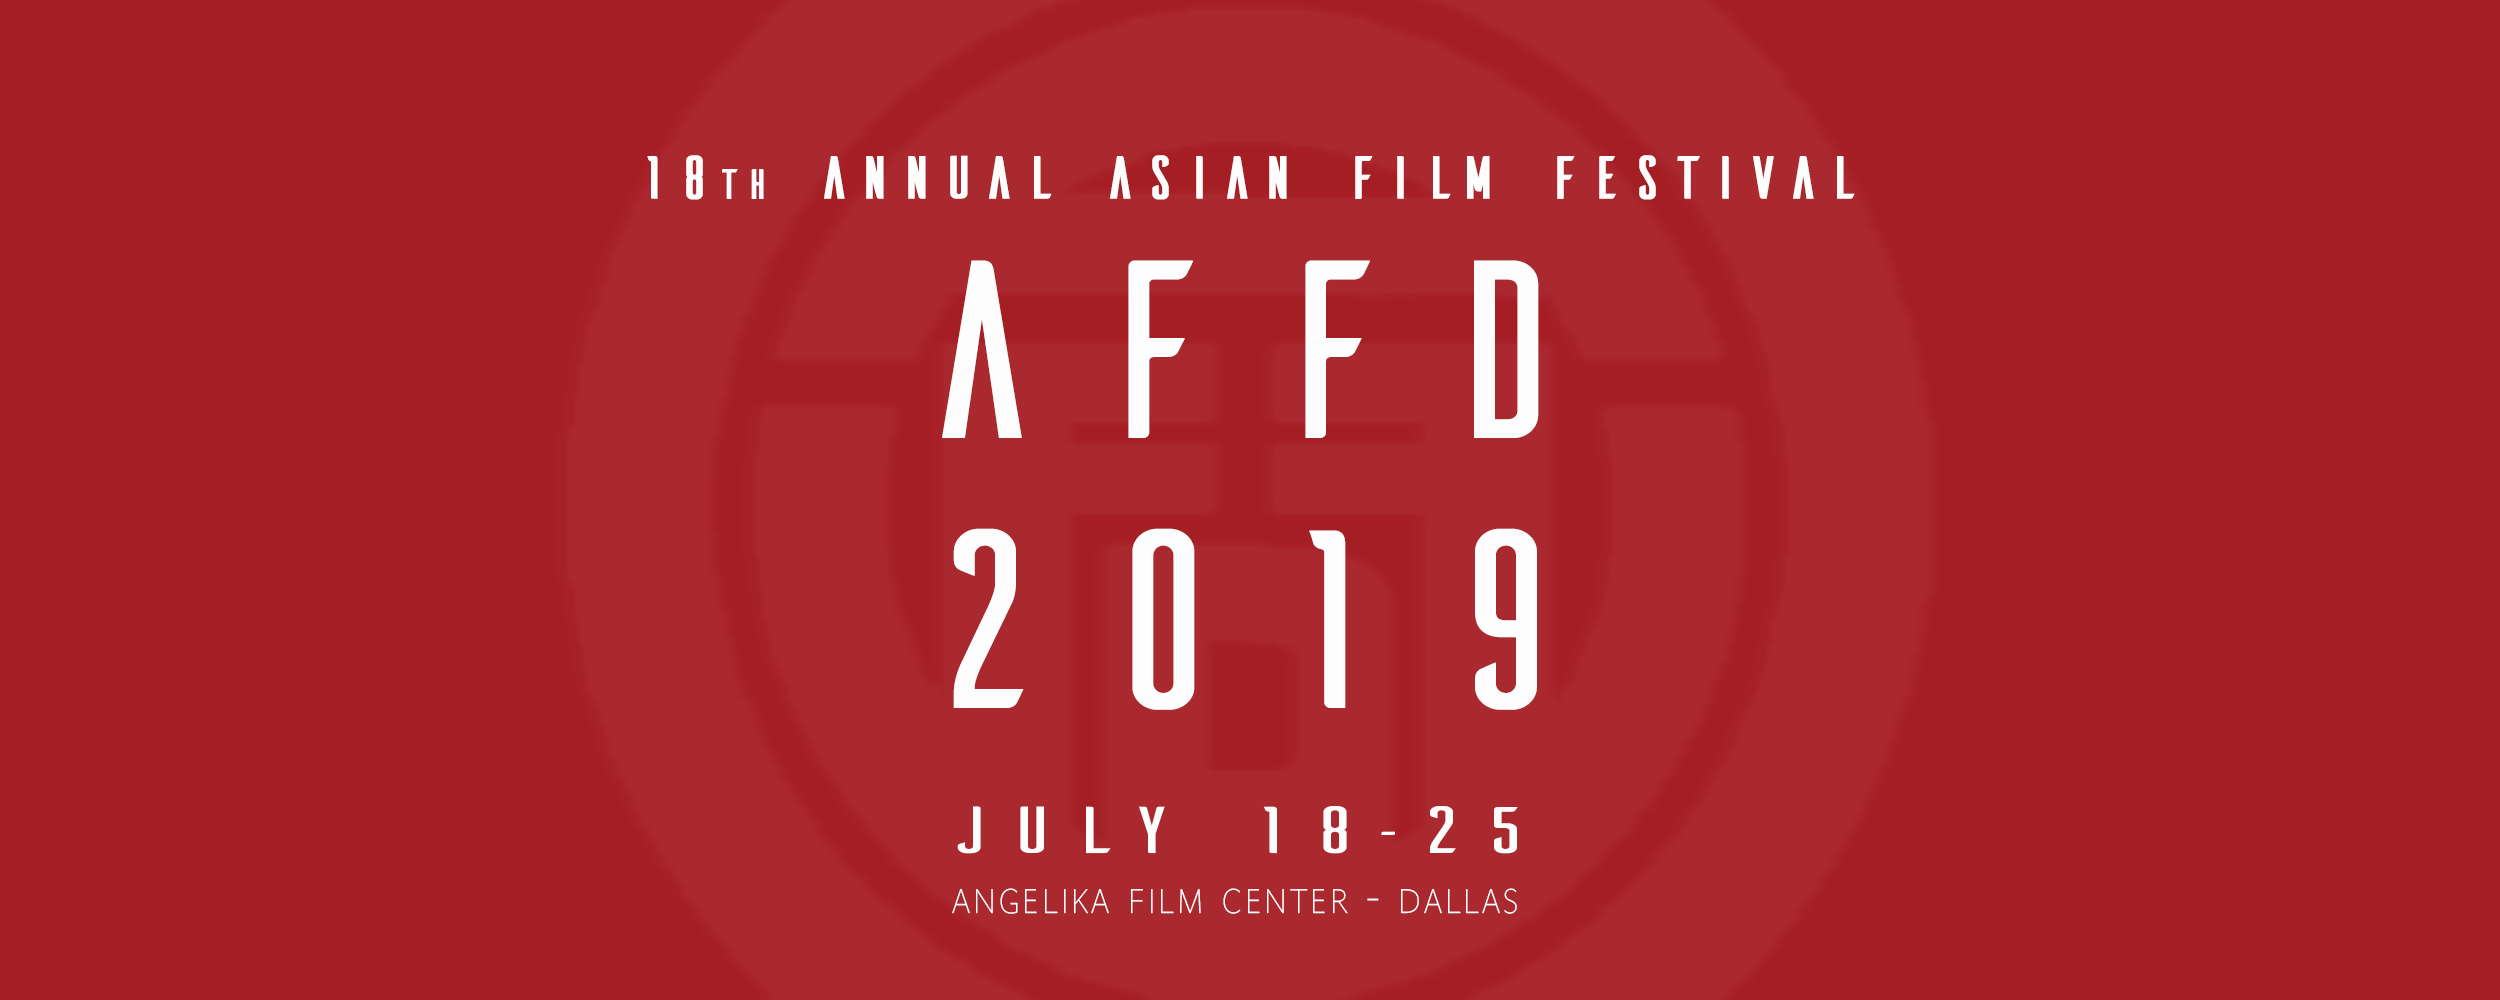 ISLE OF I  is honored to have its  World Premiere  as an Official Selection of Asian Film Festival of Dallas, TX, July 18-25, 2019!  Isle of I Screens July 20th at Angelika Film Center Dallas, Experimental Shorts, 12:30pm,  https://www.asianfilmdallas.com/